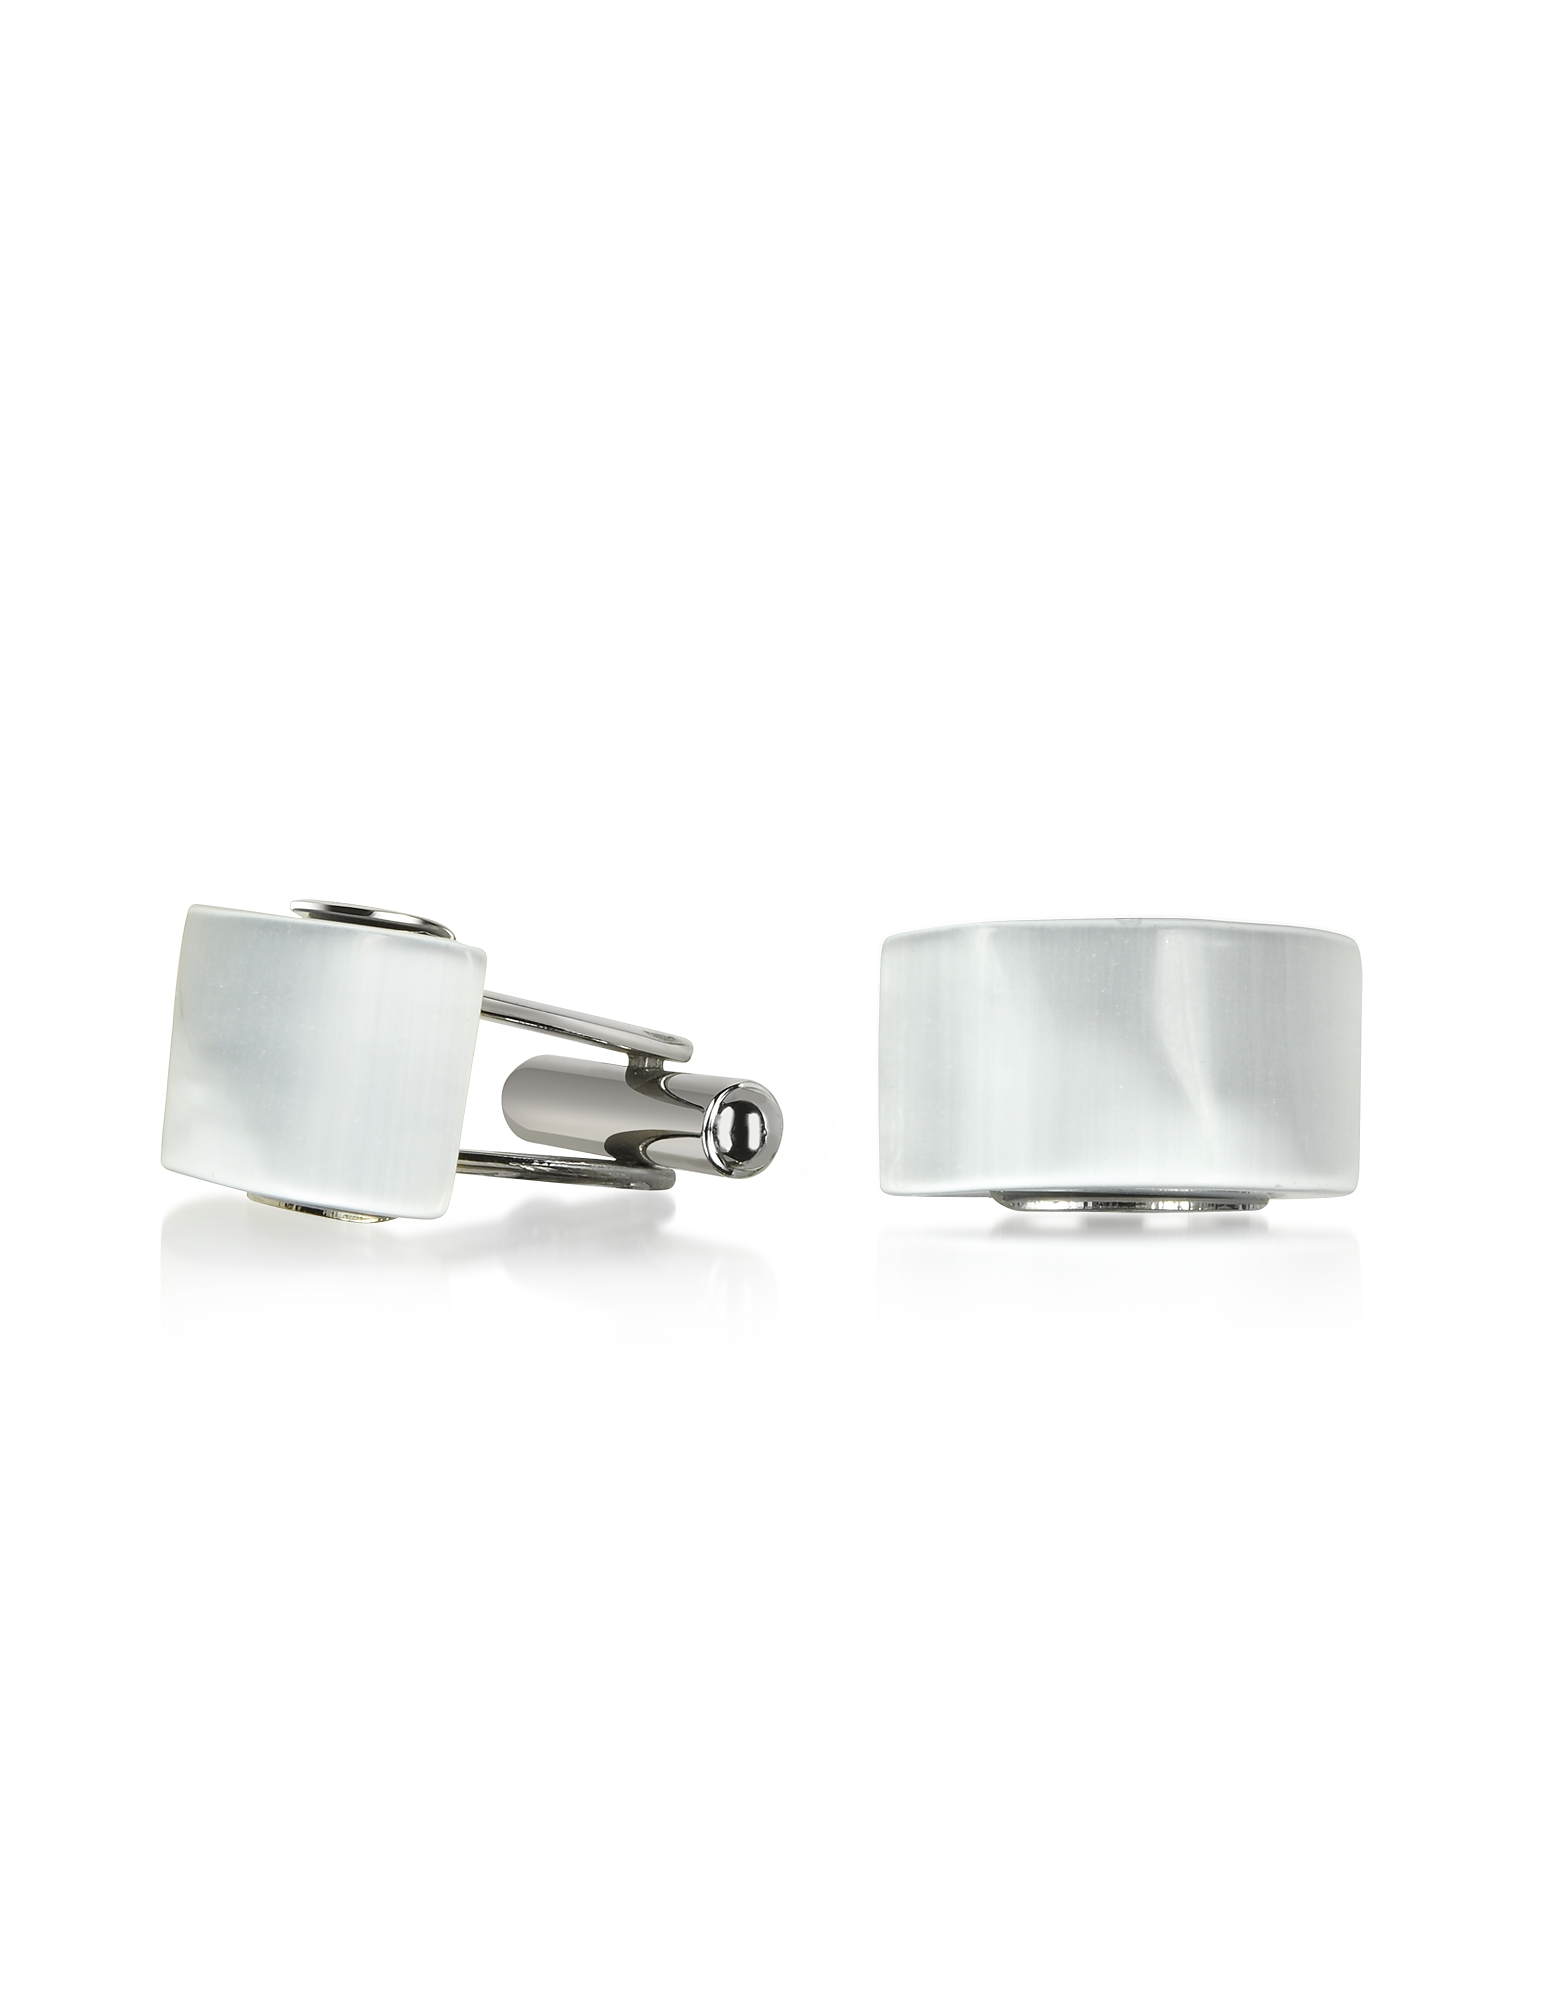 Forzieri Designer Cufflinks, Cat's eye - White/Pearl Stone Curved Cufflinks